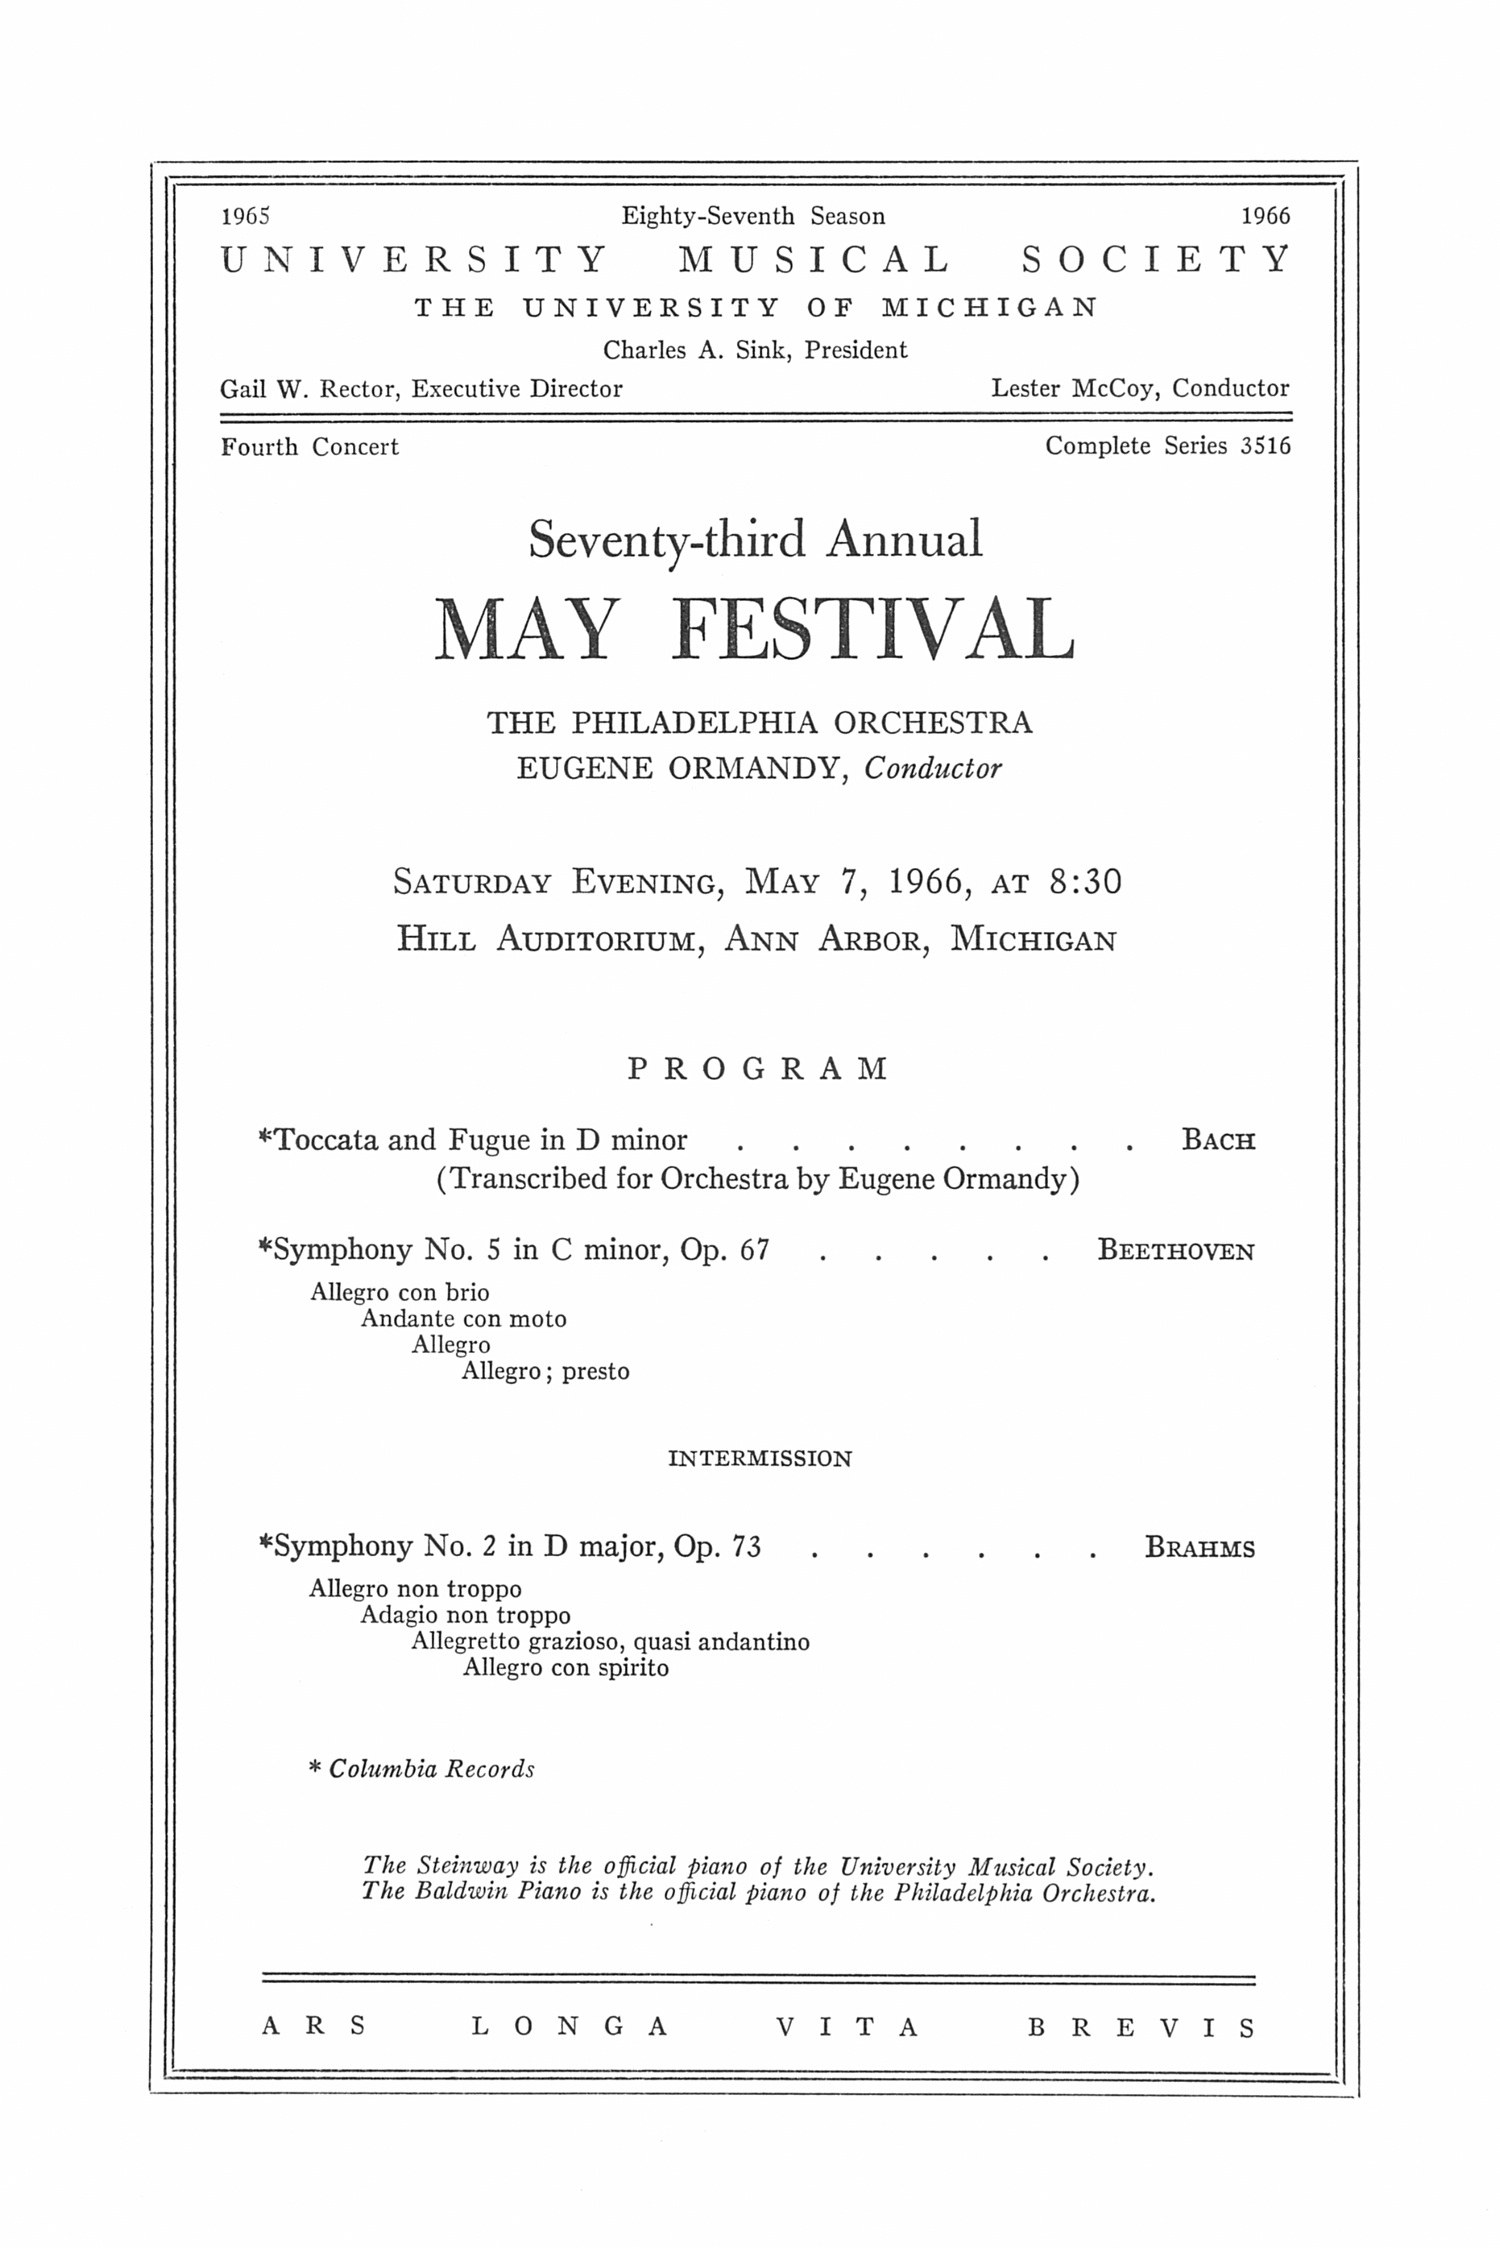 UMS Concert Program, May 7, 1966: Seventy-third Annual May Festival -- The Philadelphia Orchestra image